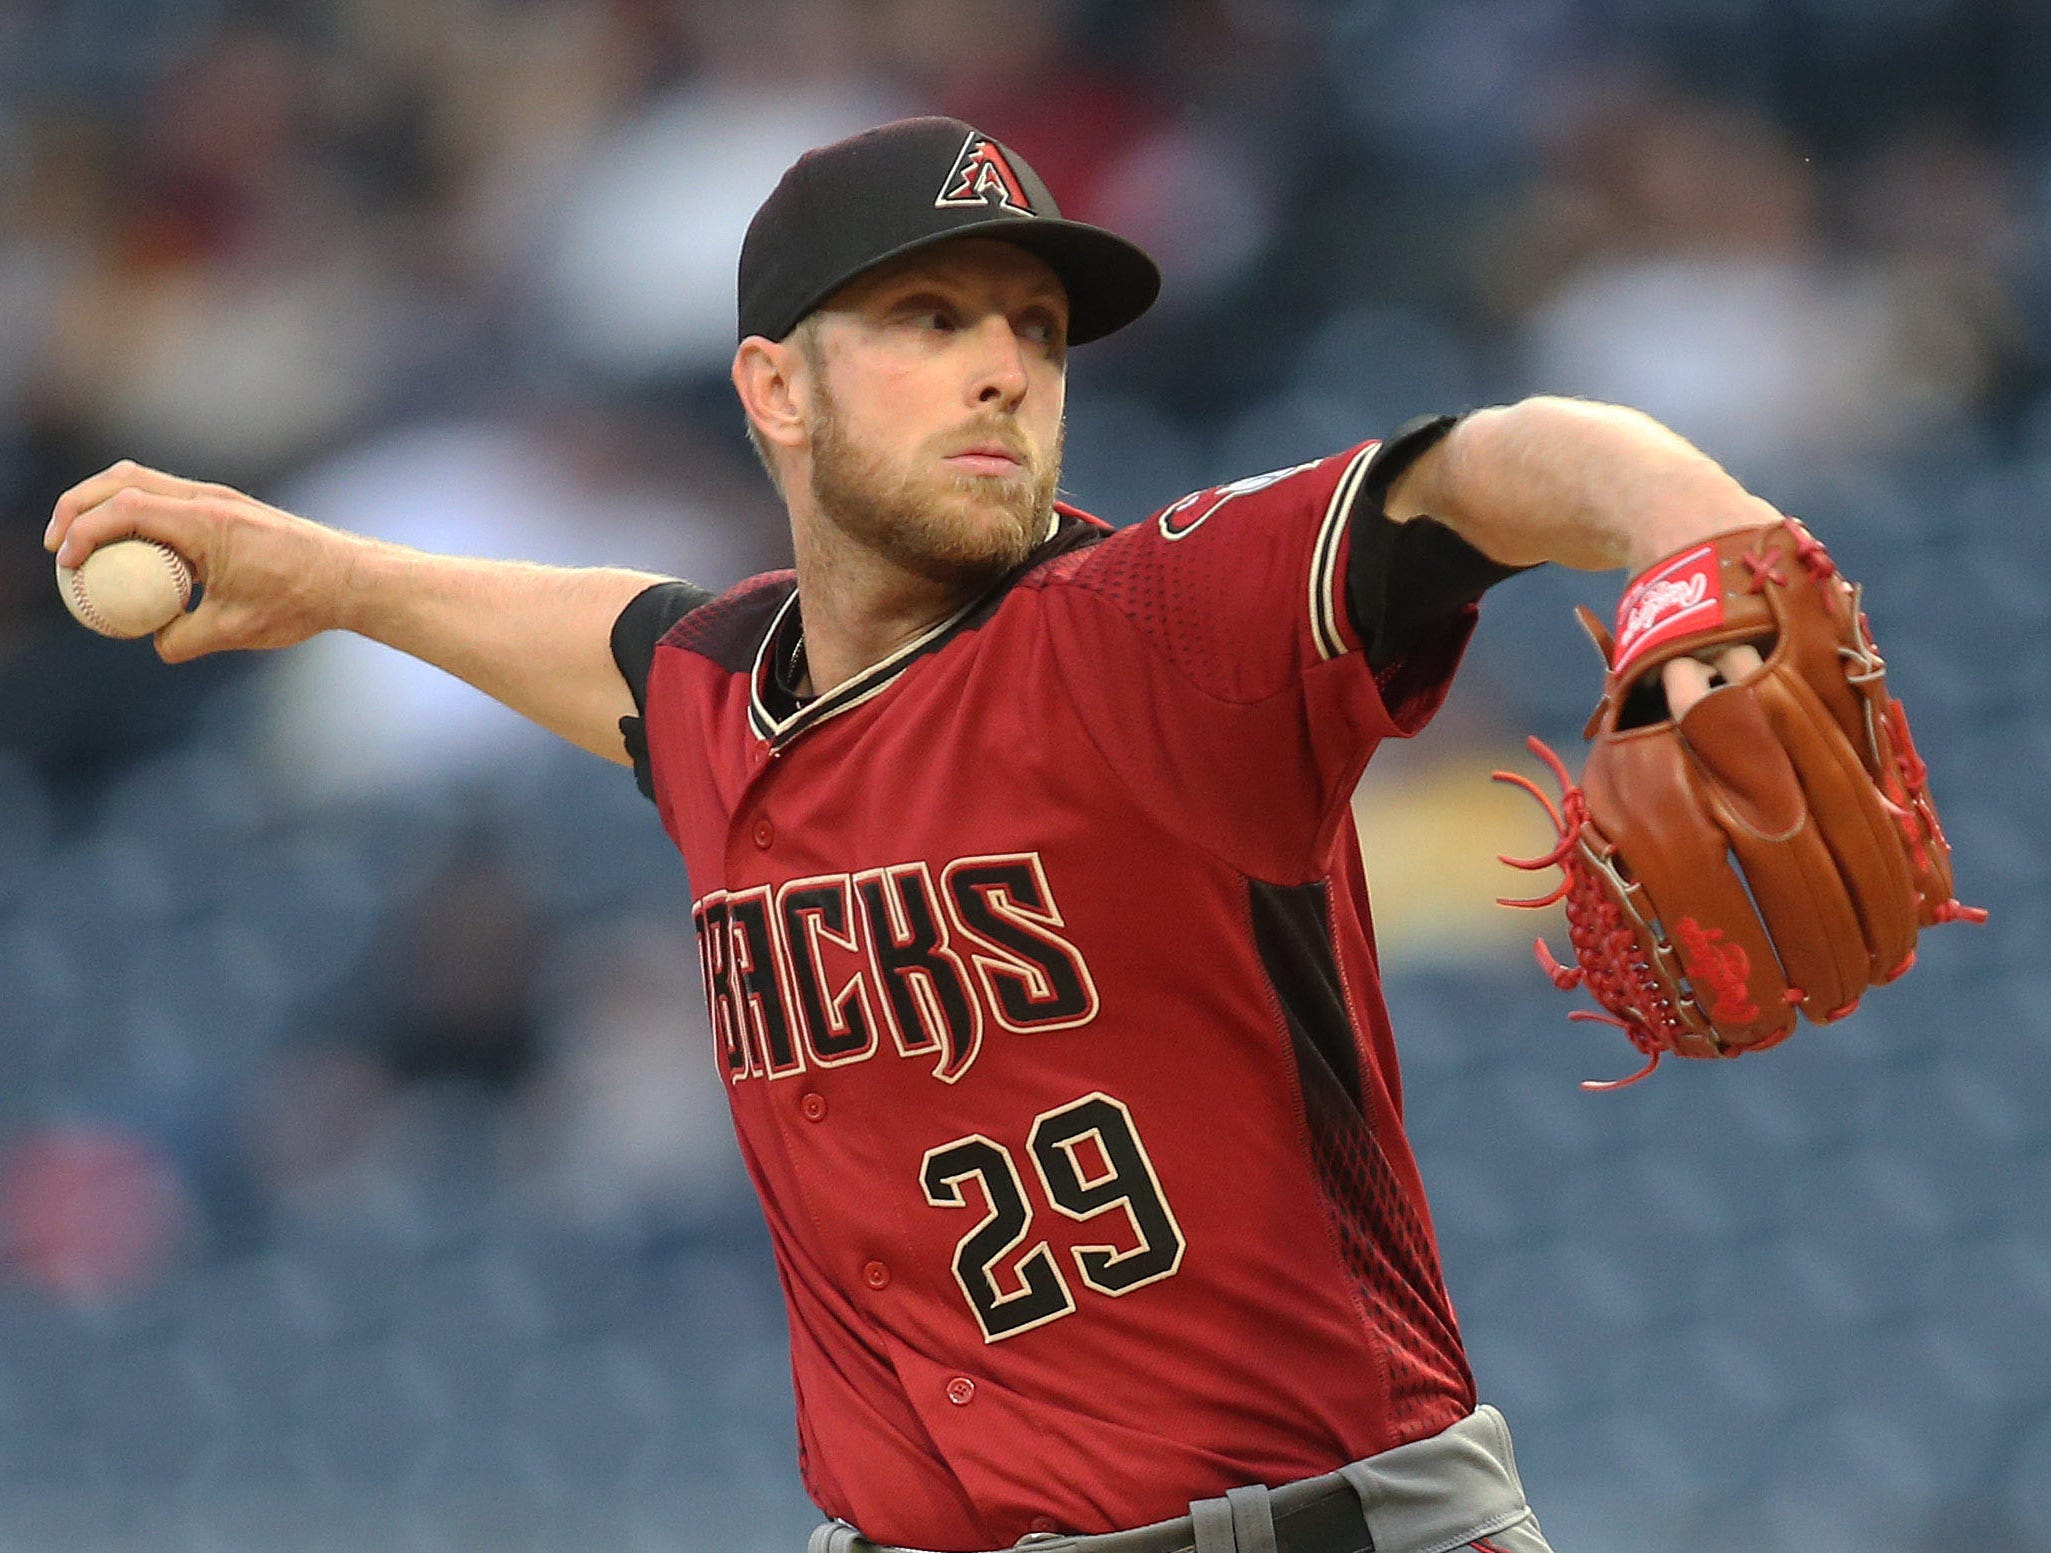 Apr 24, 2019; Pittsburgh, PA, USA; Arizona Diamondbacks starting pitcher Merrill Kelly (29) delivers a pitch against the Pittsburgh Pirates during the first inning at PNC Park. Mandatory Credit: Charles LeClaire-USA TODAY Sports